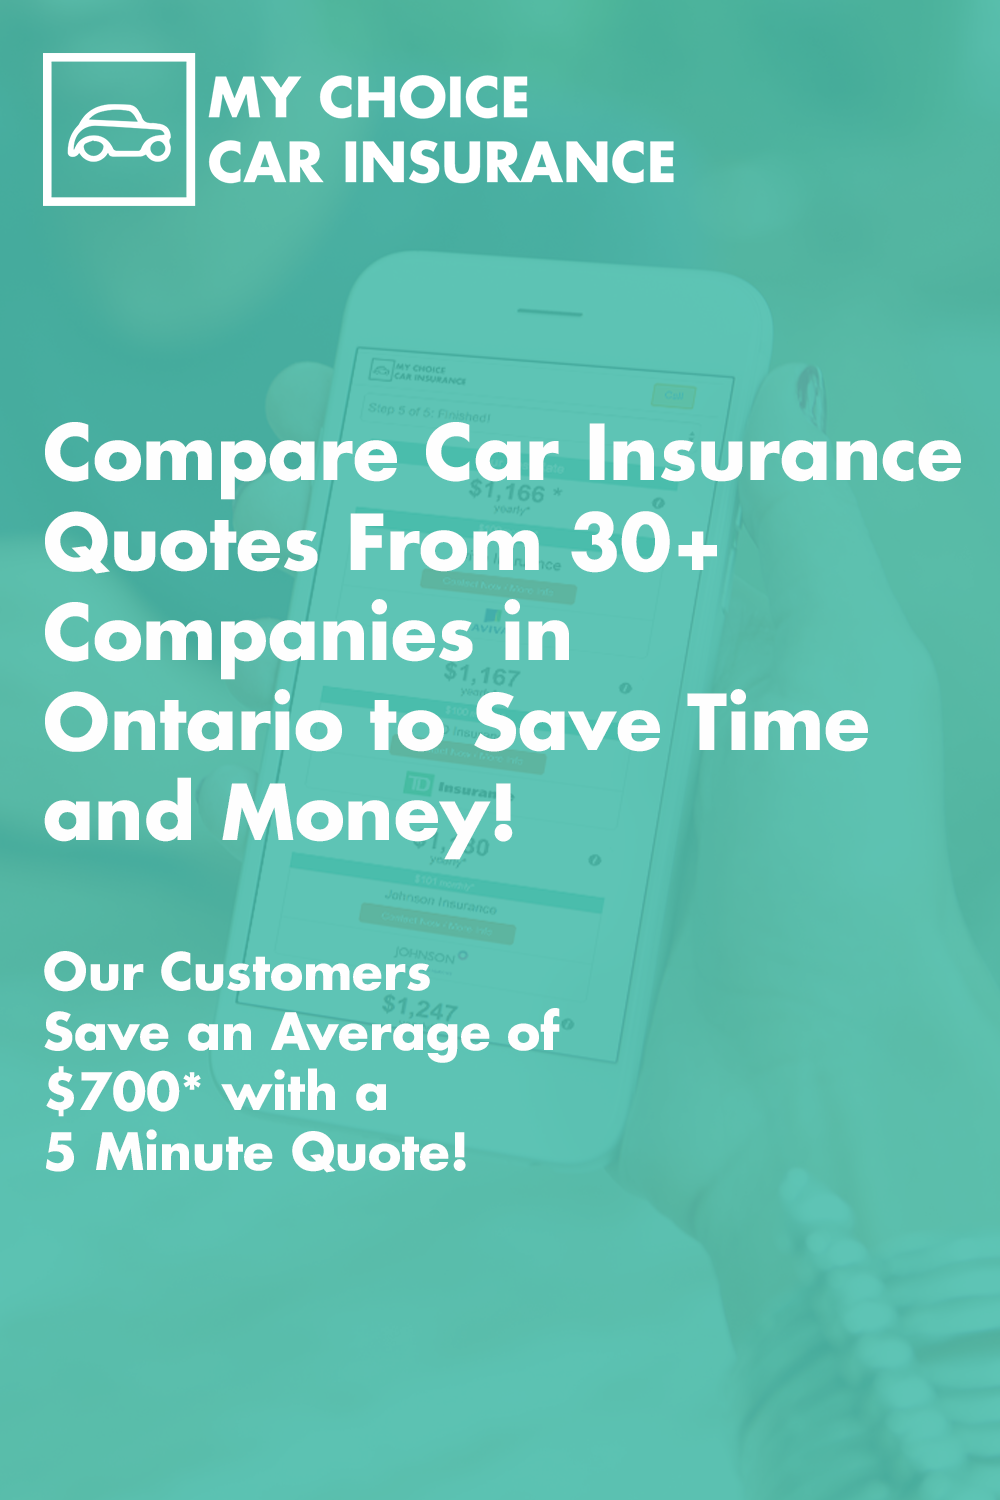 Shop smart to save time and money. Get a free car